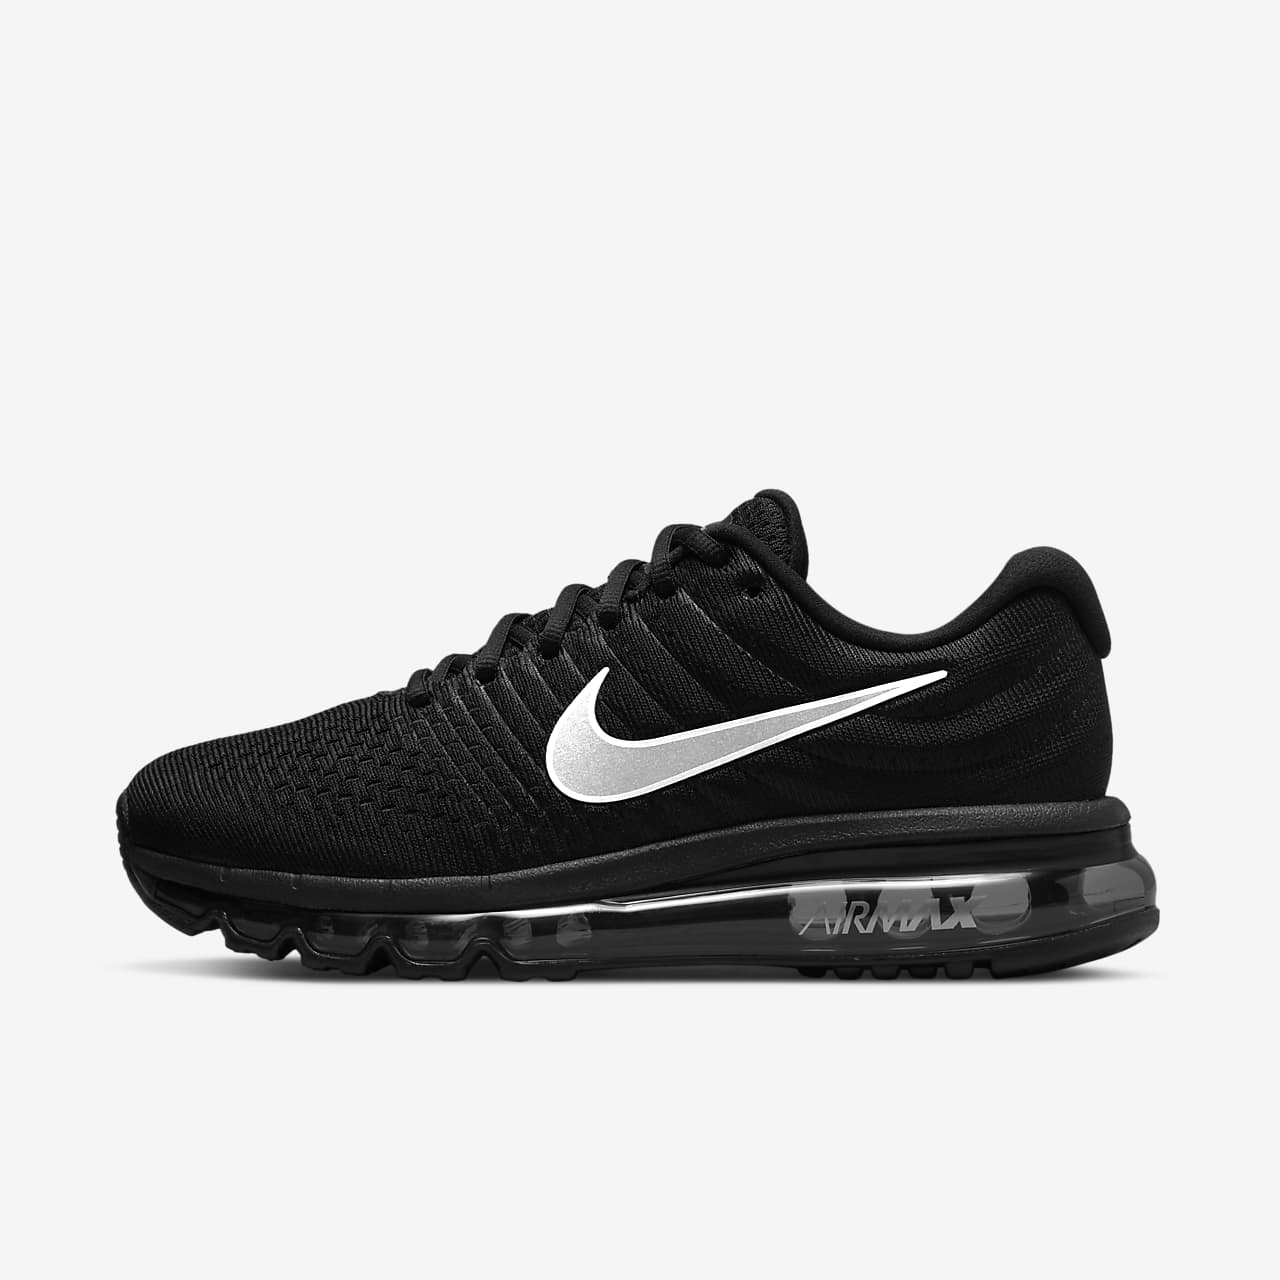 6c75f02d91 Nike Air Max 2017 Women's Shoe. Nike.com IE